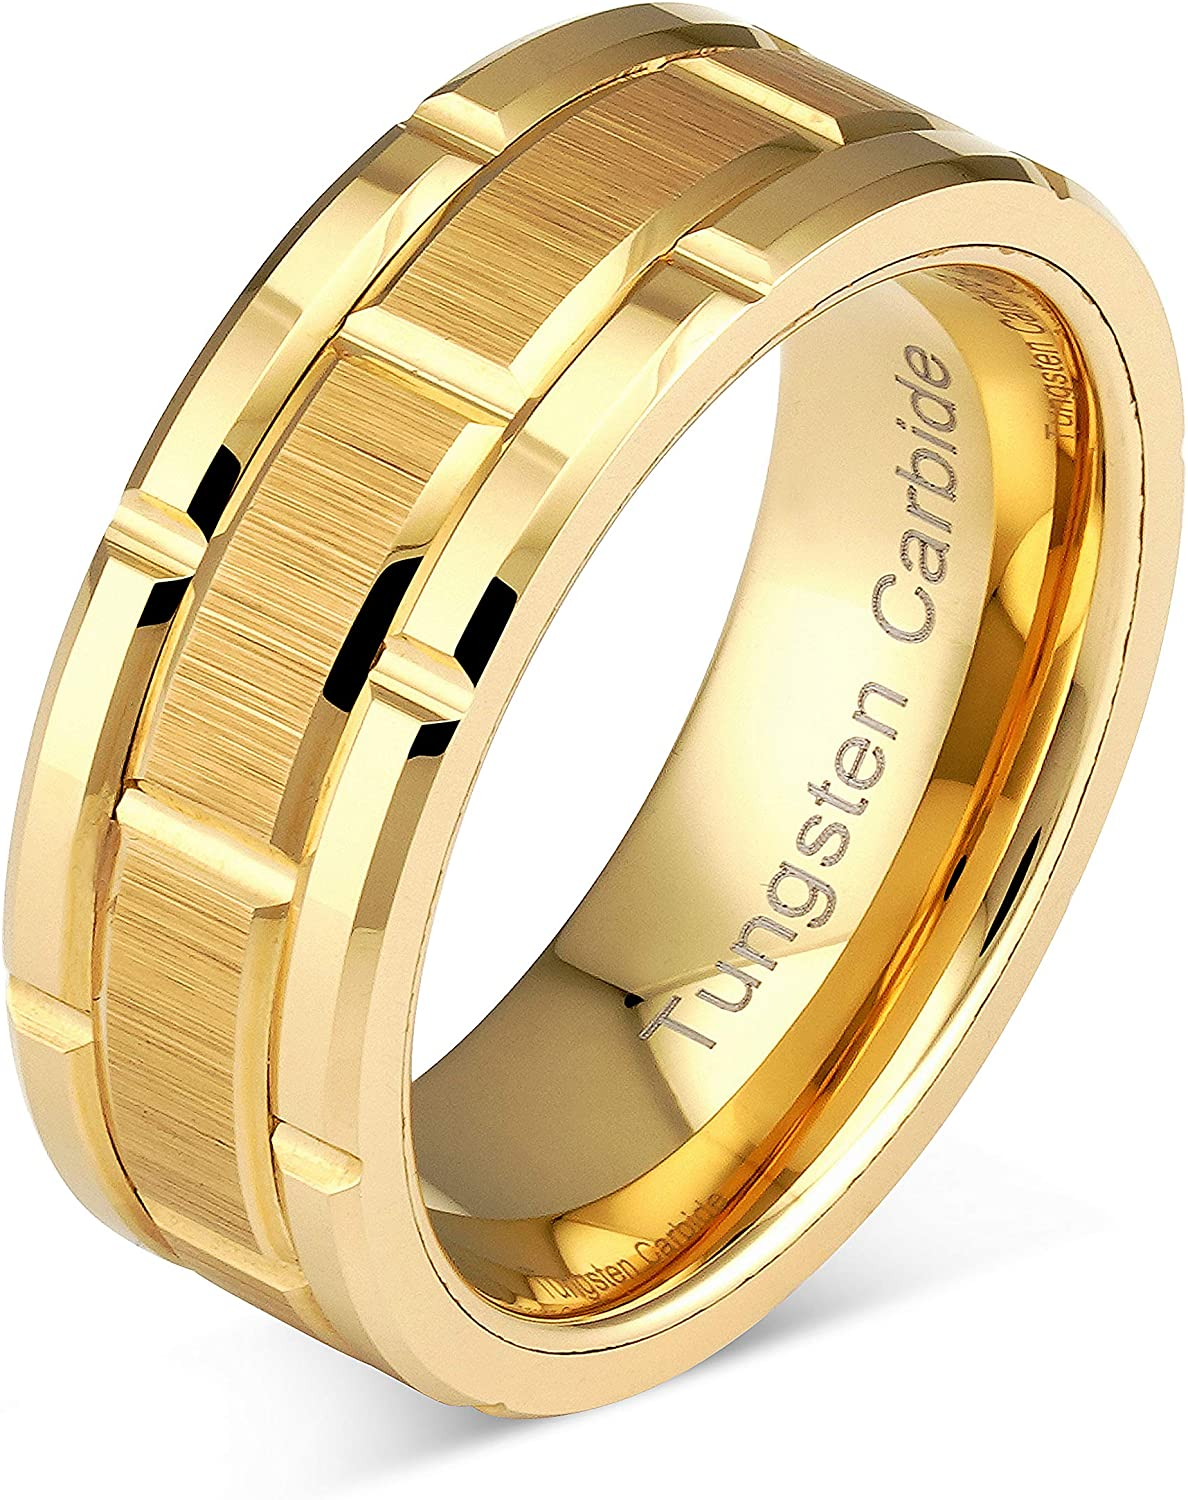 100S JEWELRY Engraved Personalized Tungsten Ring For Men Women Wedding Band Gold Brick Pattern Size 6-16